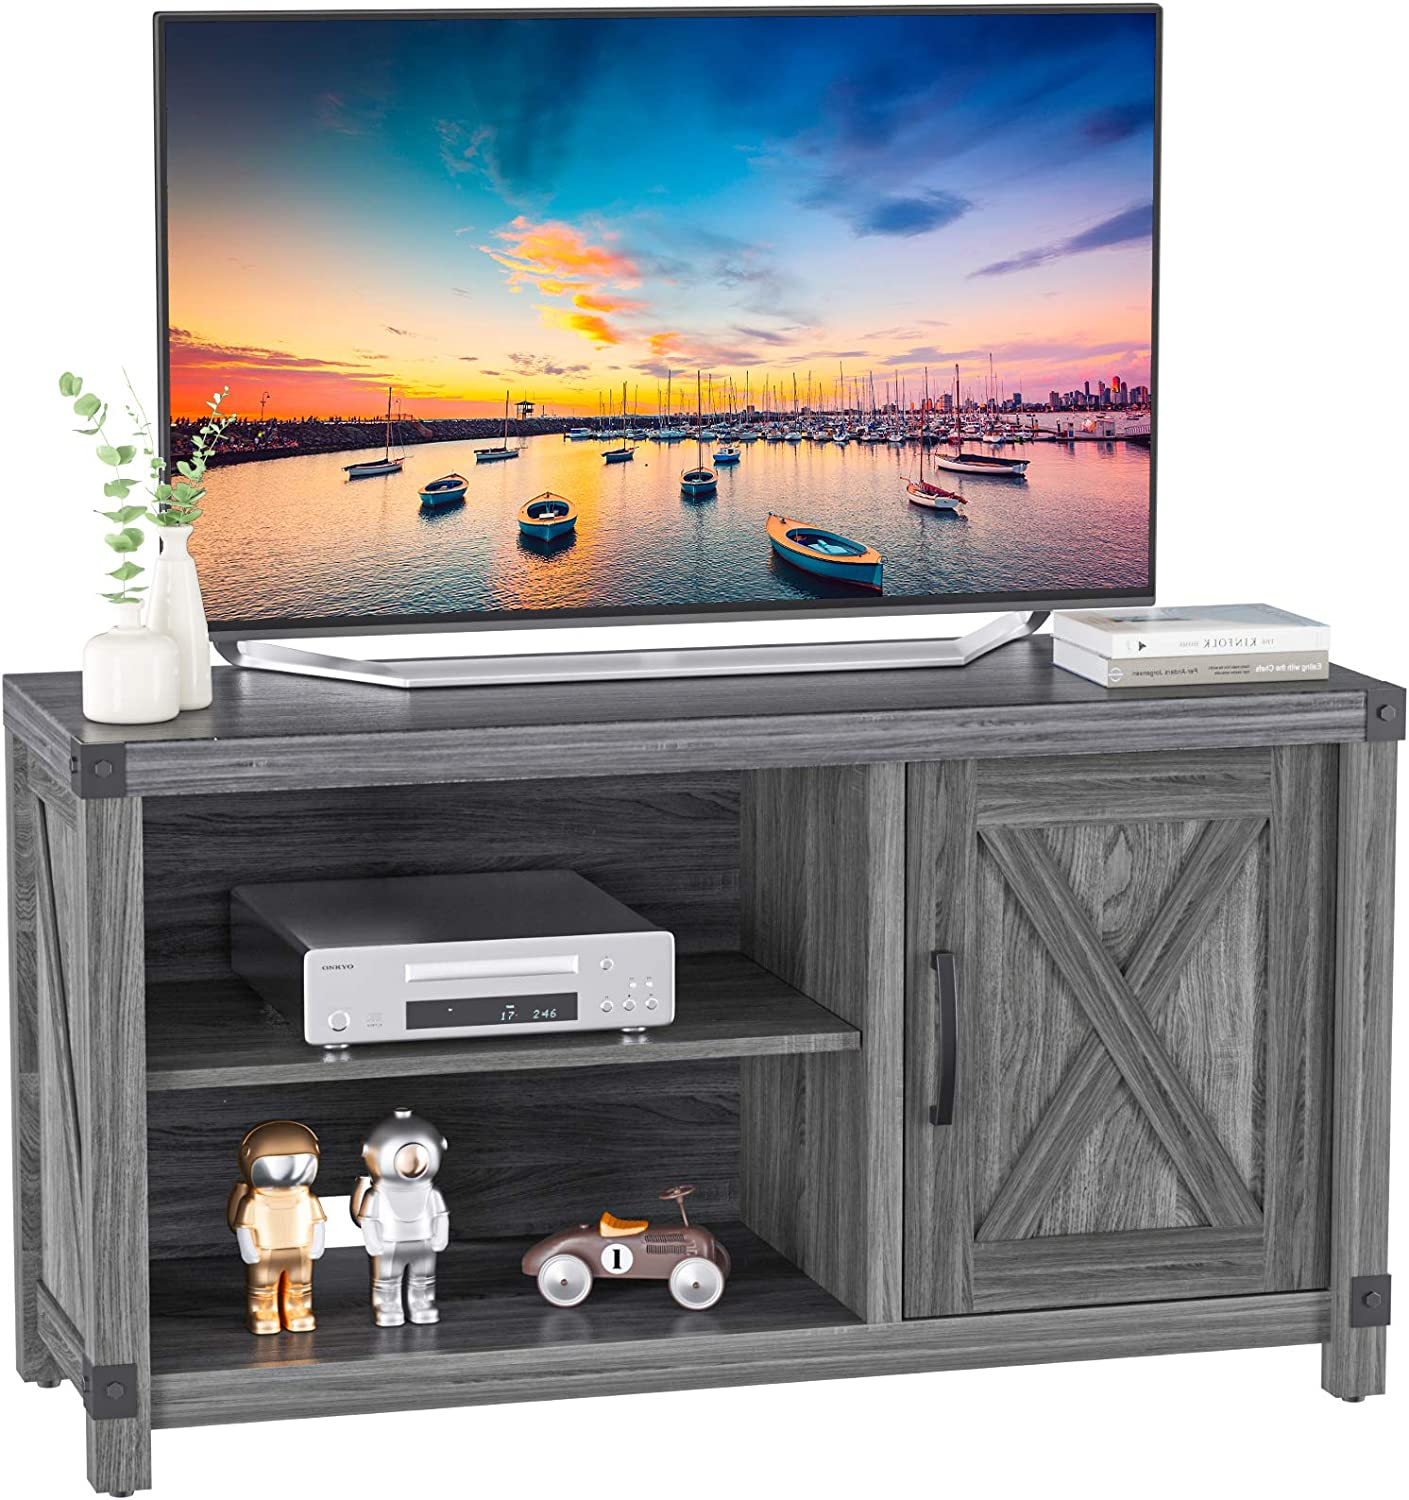 TV Console Cabinet for TVs up to 50 Inch W/Media Shelves, Farmhouse TV Stand Style Entertainment Center for Soundbar or Other Media, Barn Door TV Stand with Storage for Living Room Bedroom, APRTS03D